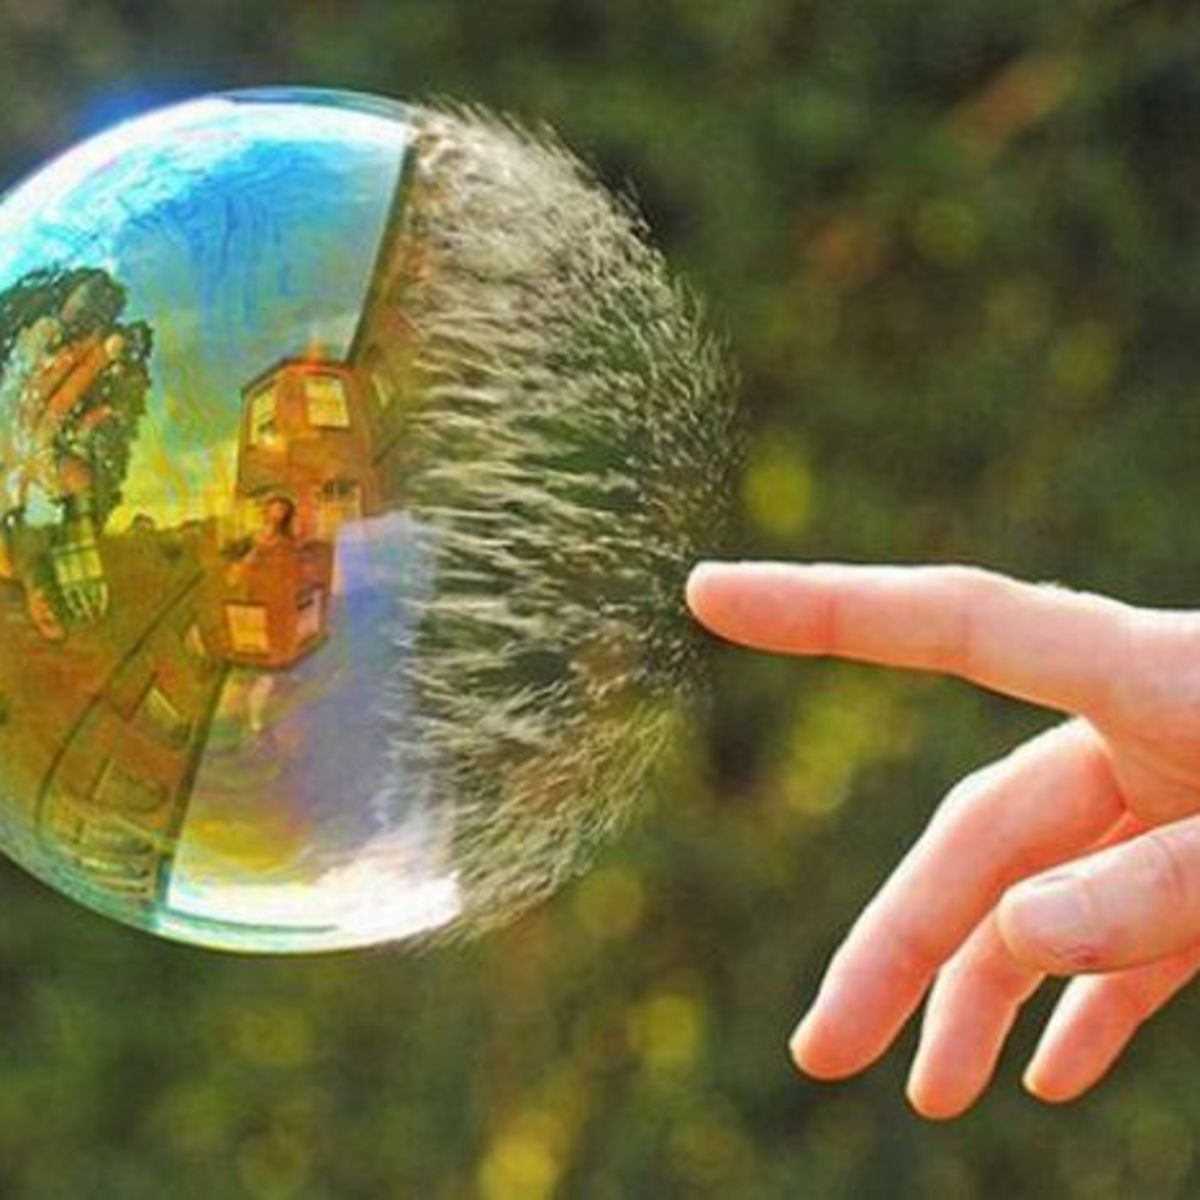 water bubble burst with finger